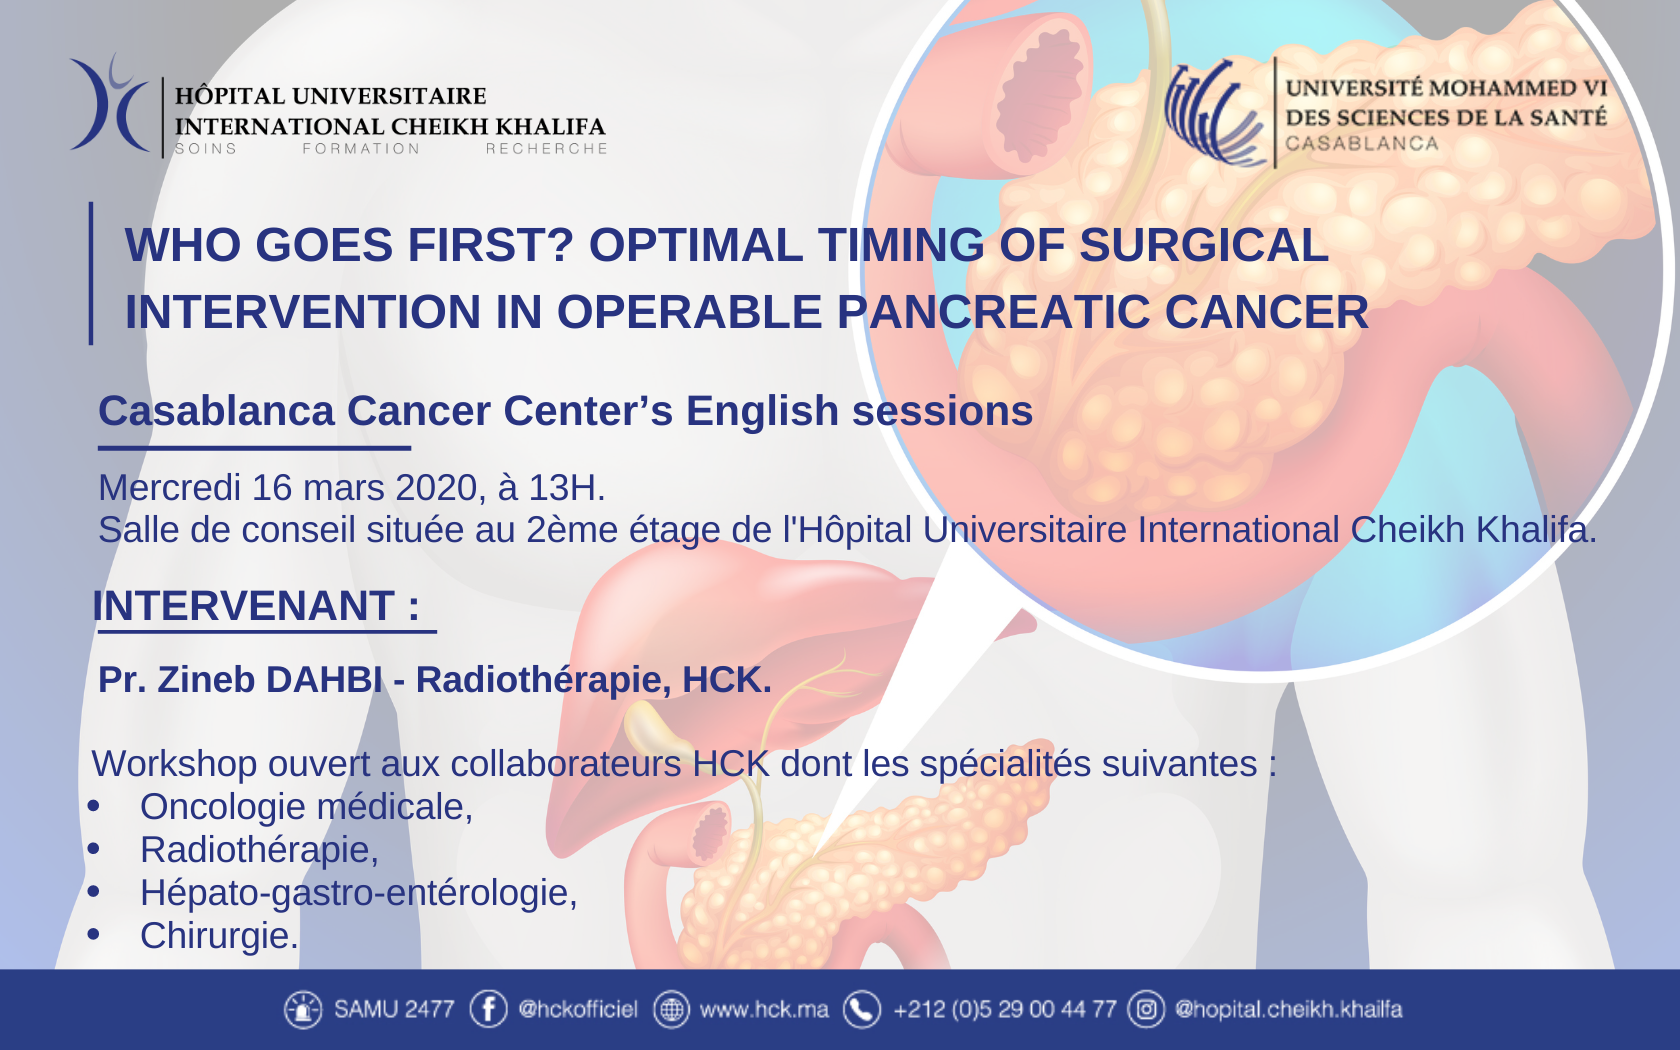 CCC's ENGLISH SESSION : WHO GOES FIRST? OPTIMAL TIMING OF SURGICAL INTERVENTION IN OPERABLE PANCREATIC CANCER